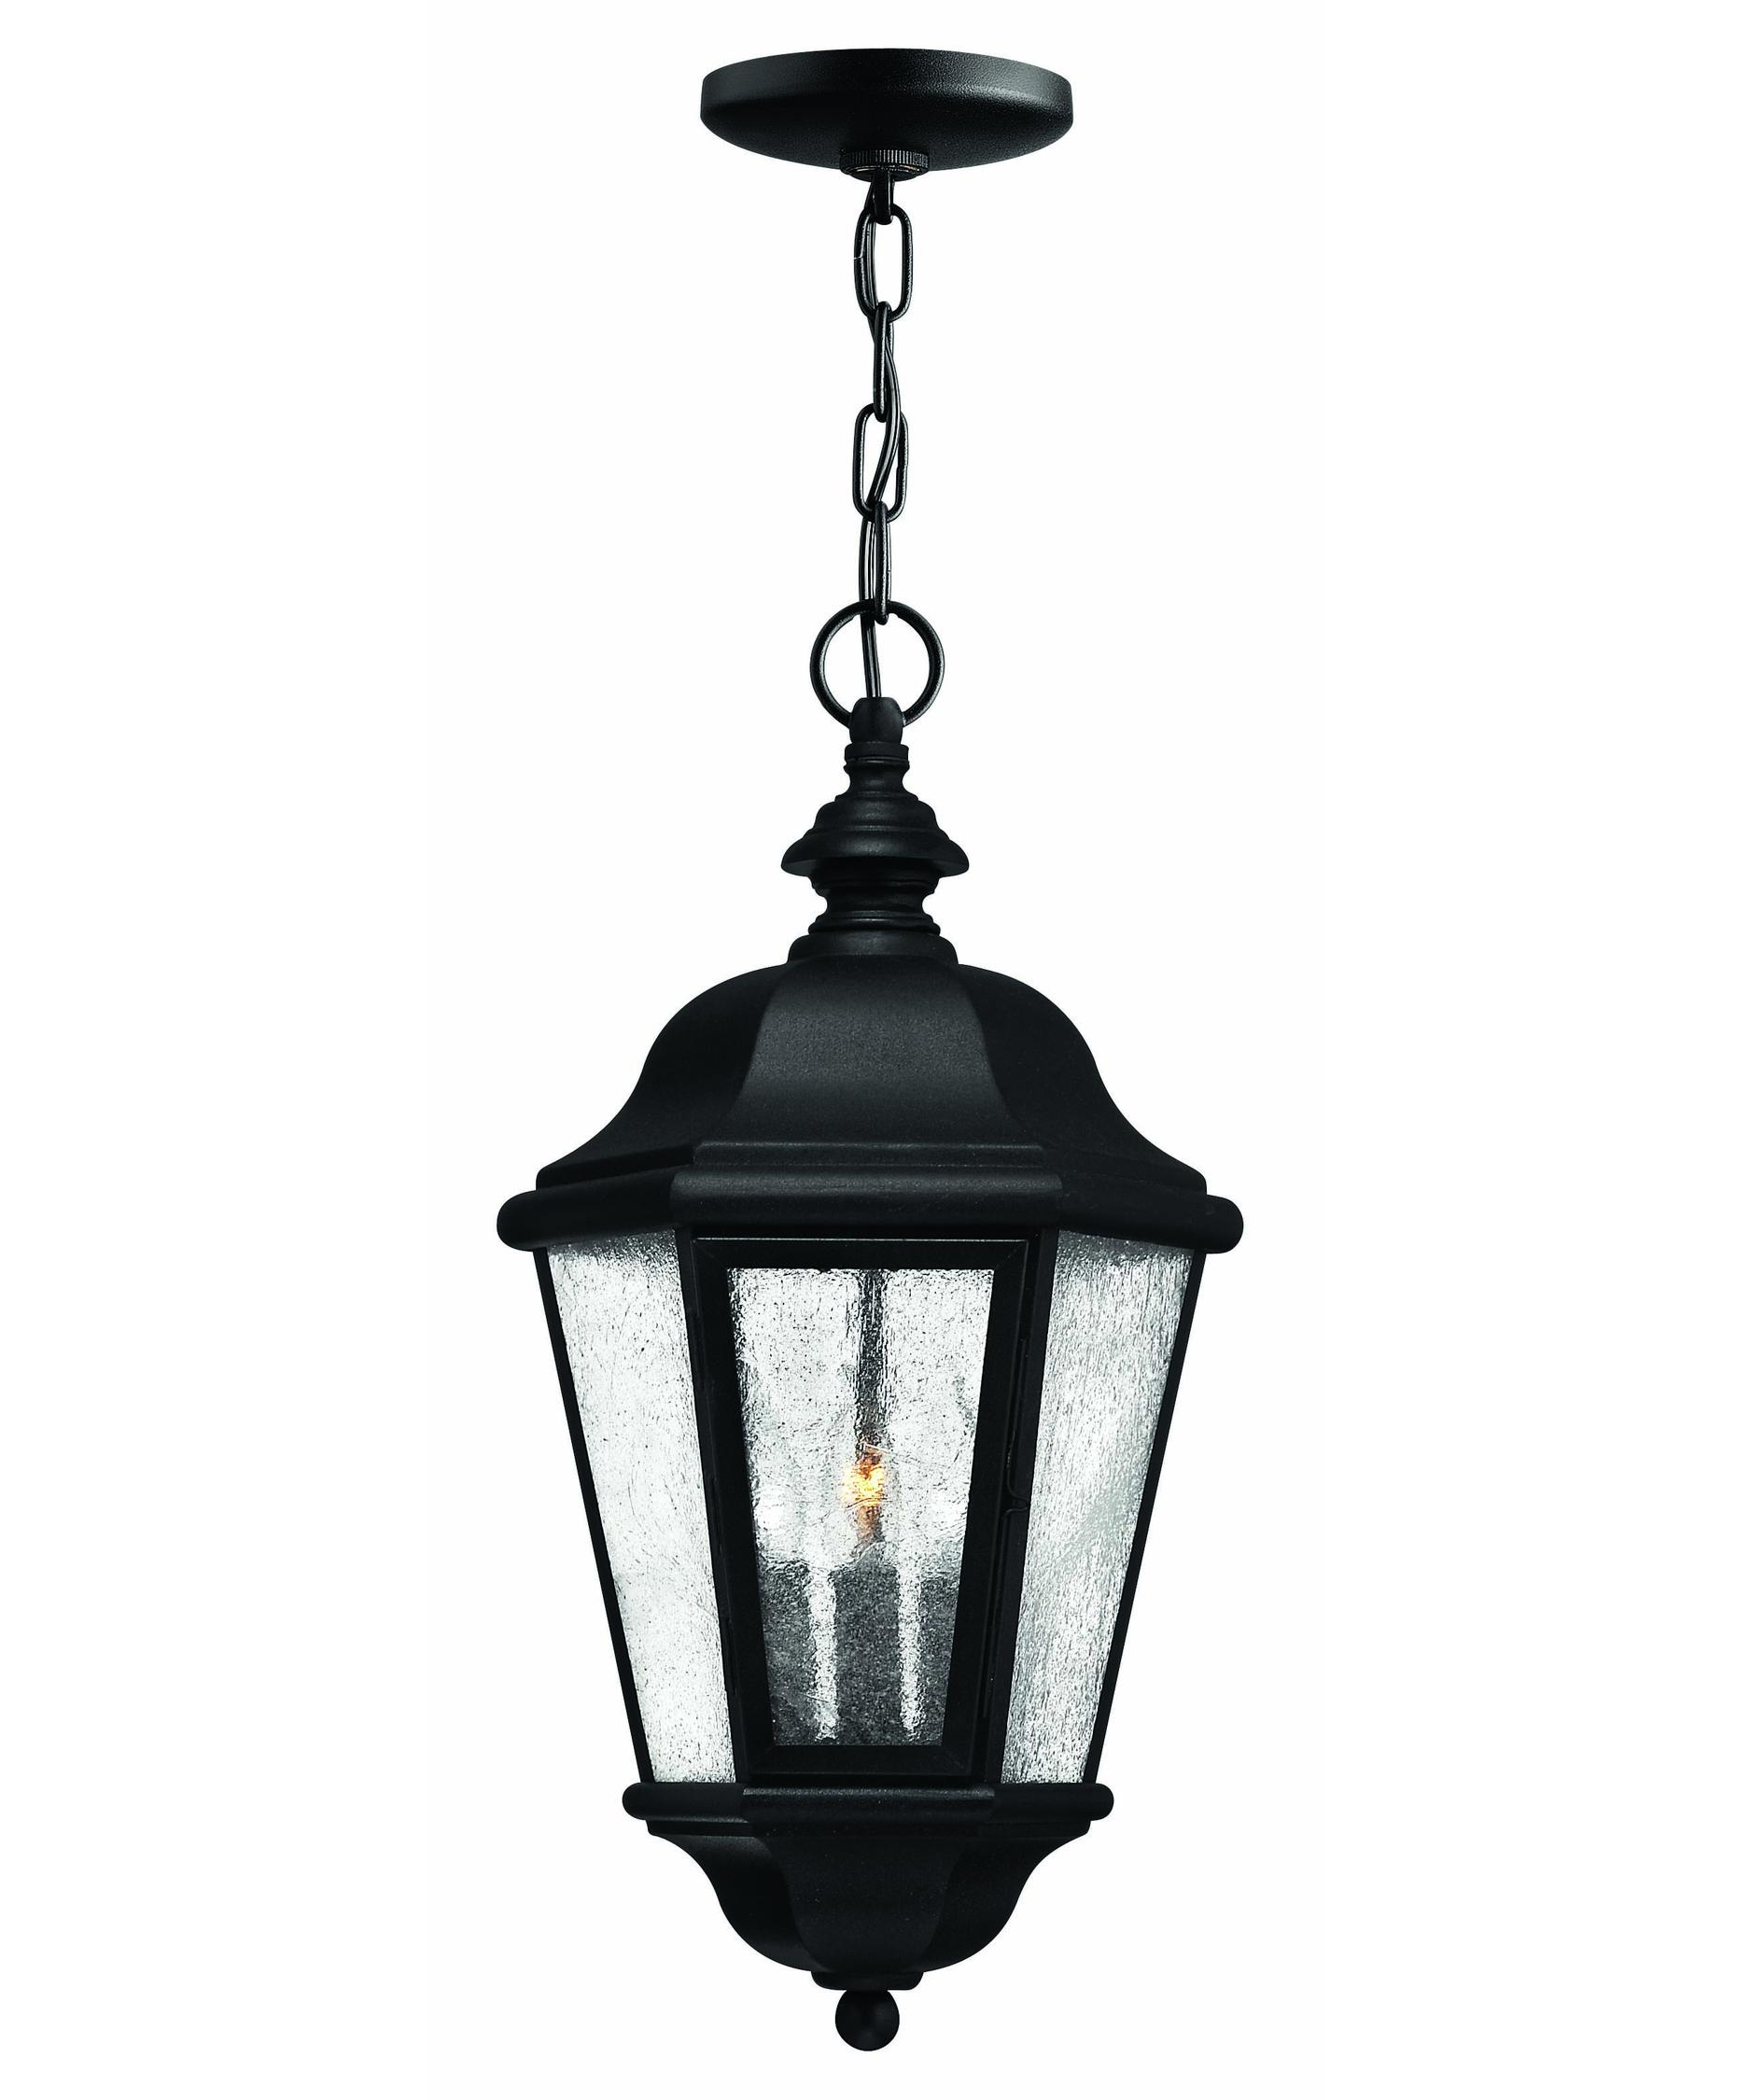 Outdoor Hanging Lanterns At Amazon Intended For Current Lighting: Cool Outdoor Hanging Lights For Outdoor Lighting Design (View 12 of 20)